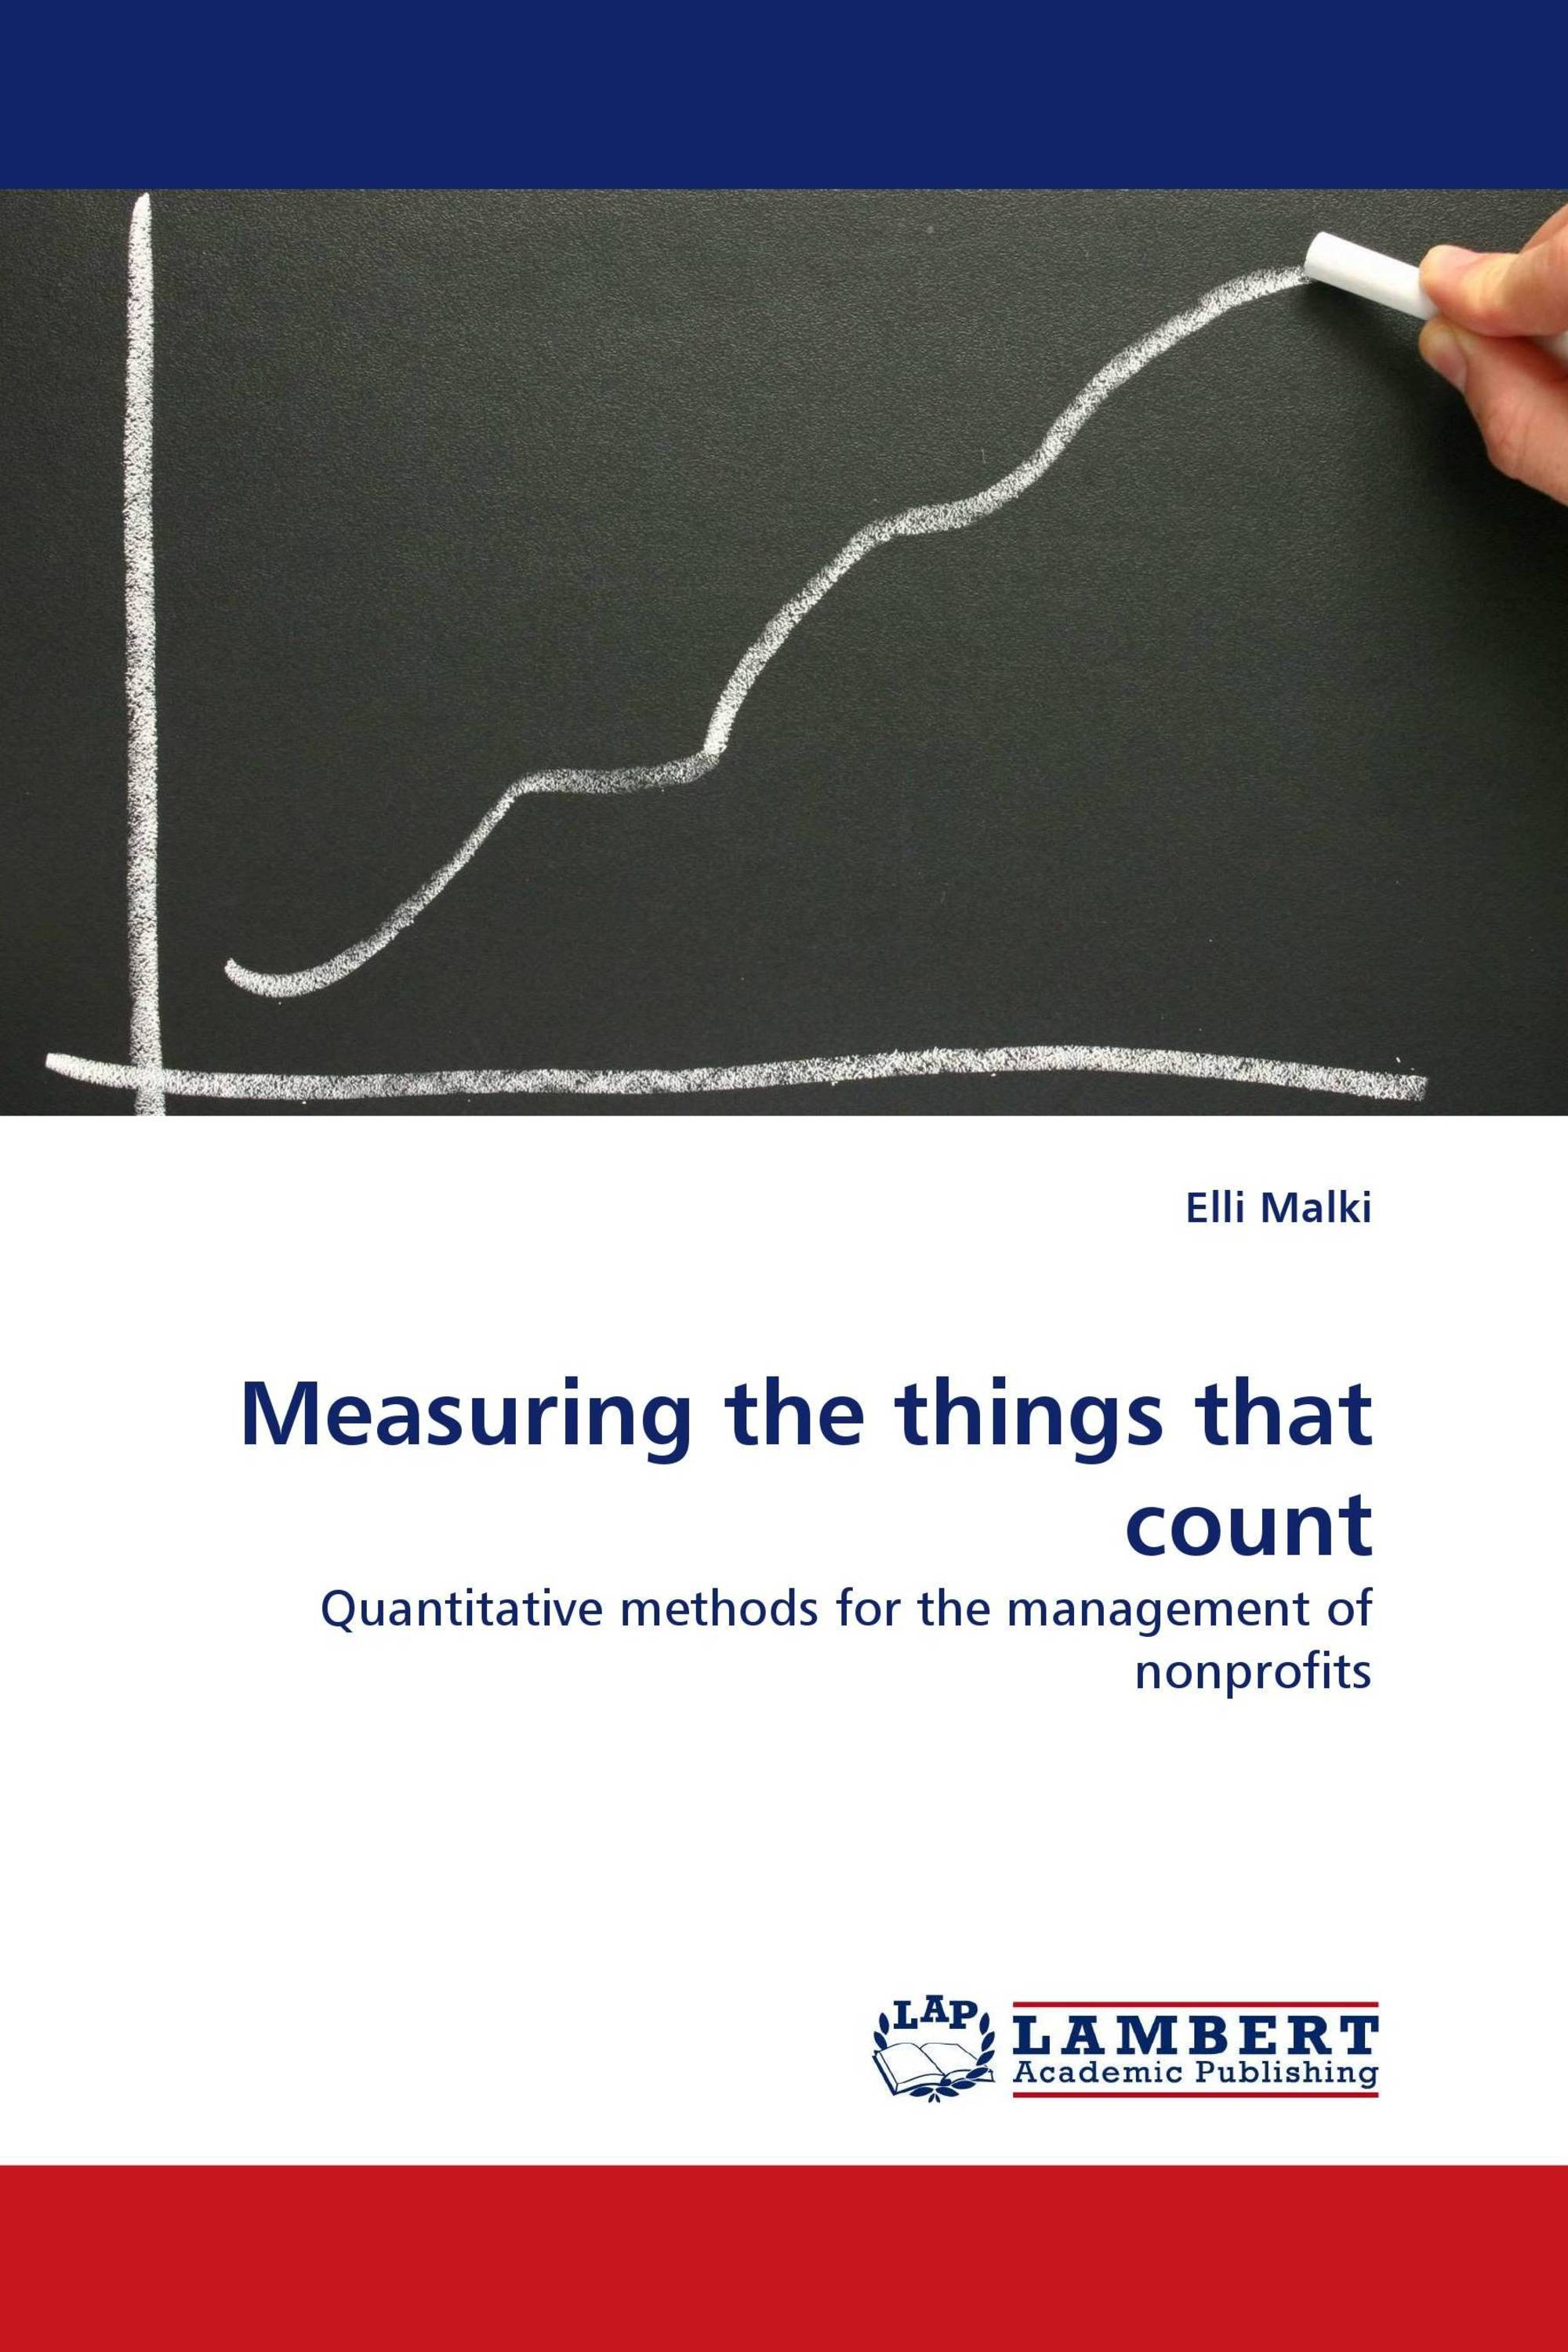 Measuring the things that count